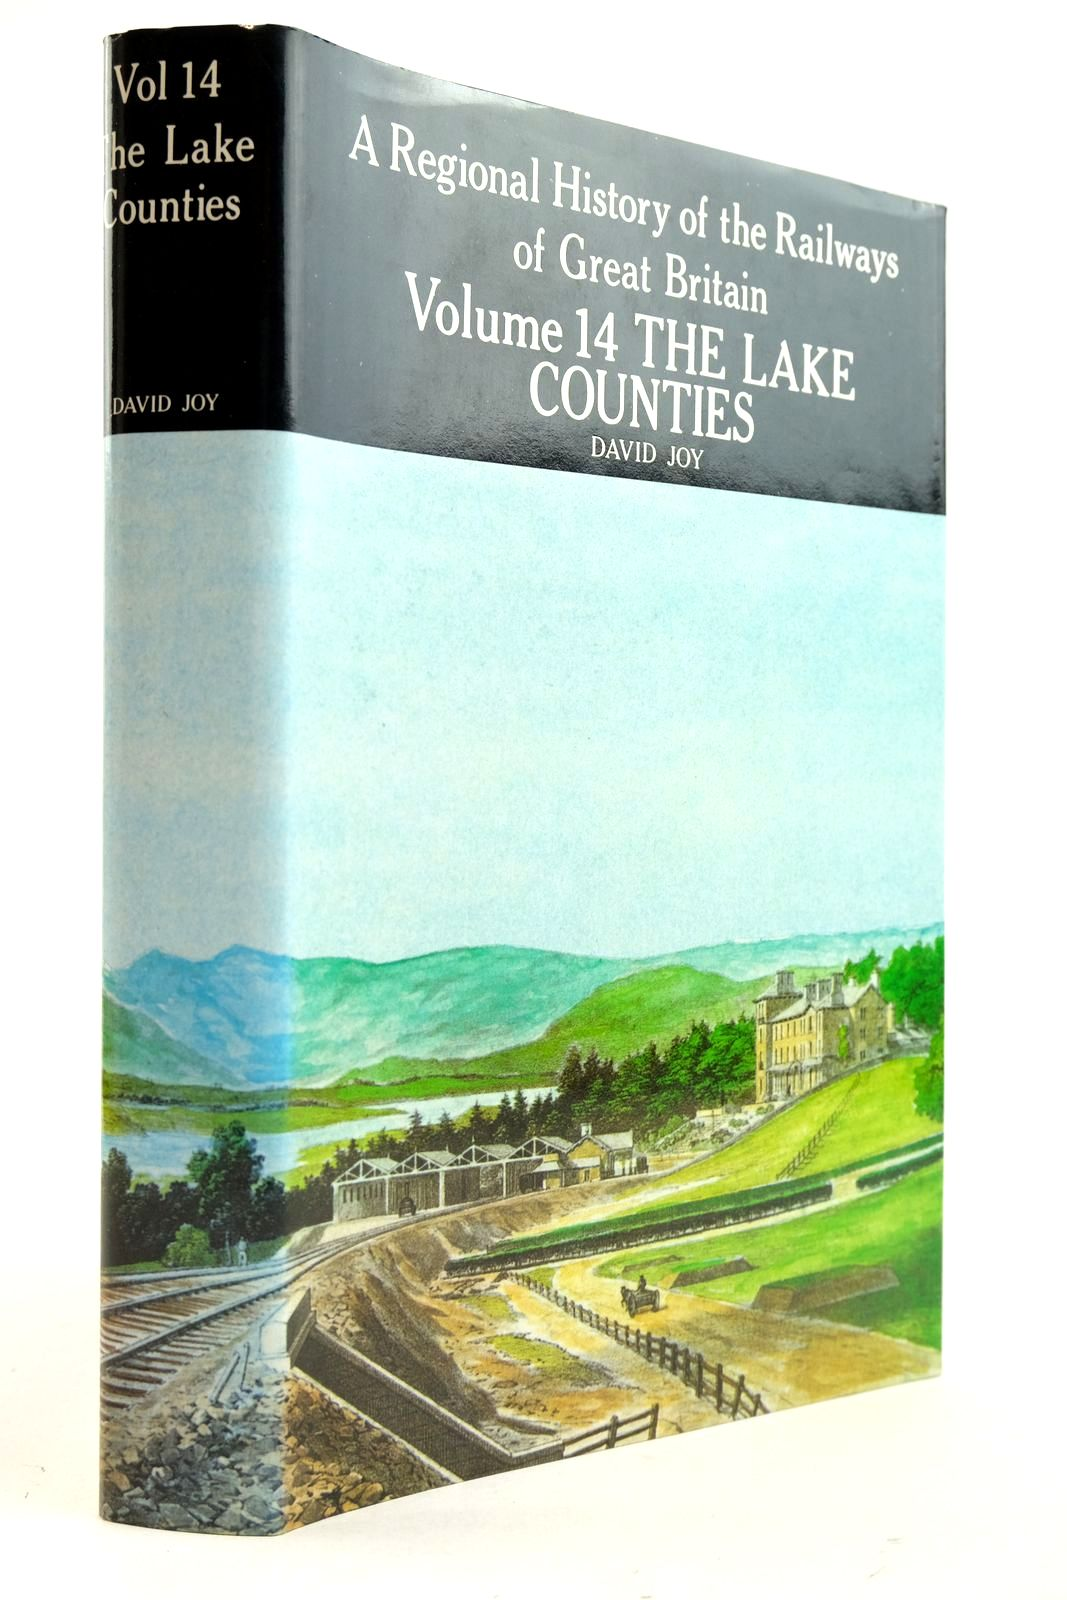 Photo of A REGIONAL HISTORY OF THE RAILWAYS OF GREAT BRITAIN VOLUME XIV THE LAKE COUNTIES written by Joy, David published by David & Charles (STOCK CODE: 2133058)  for sale by Stella & Rose's Books